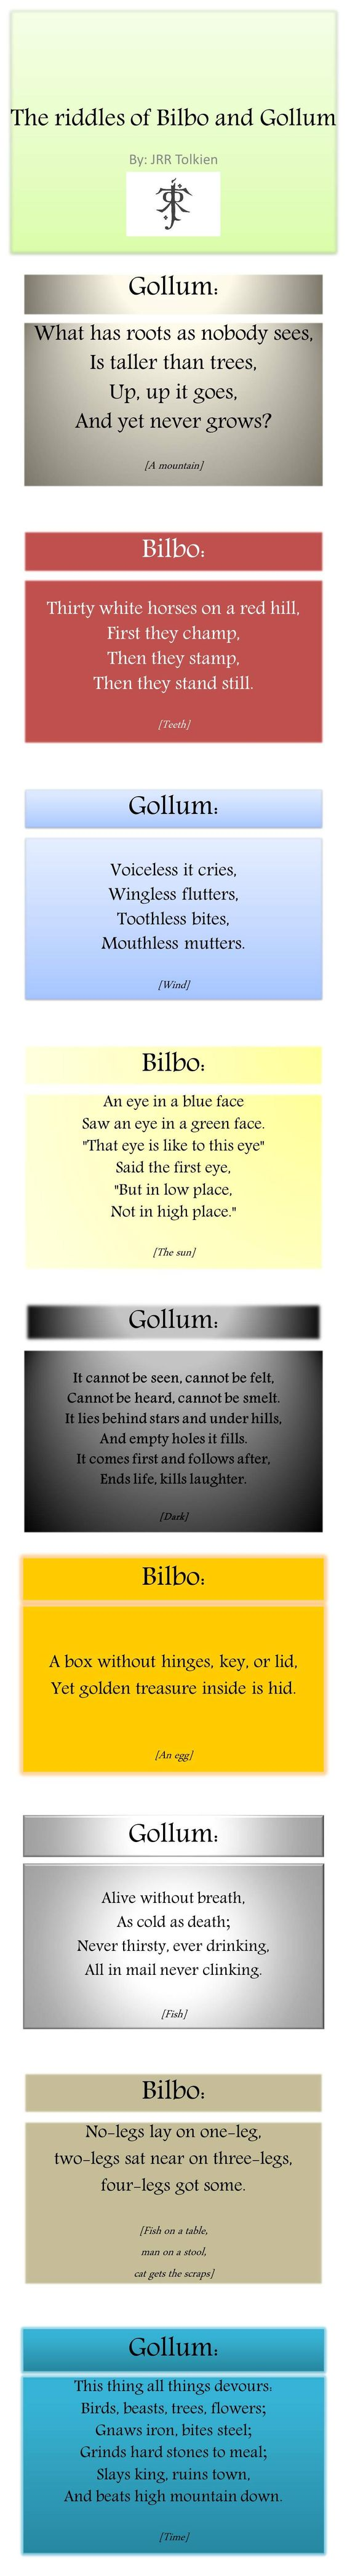 Riddles Tolkien. The last one is by Bilbo and he asks